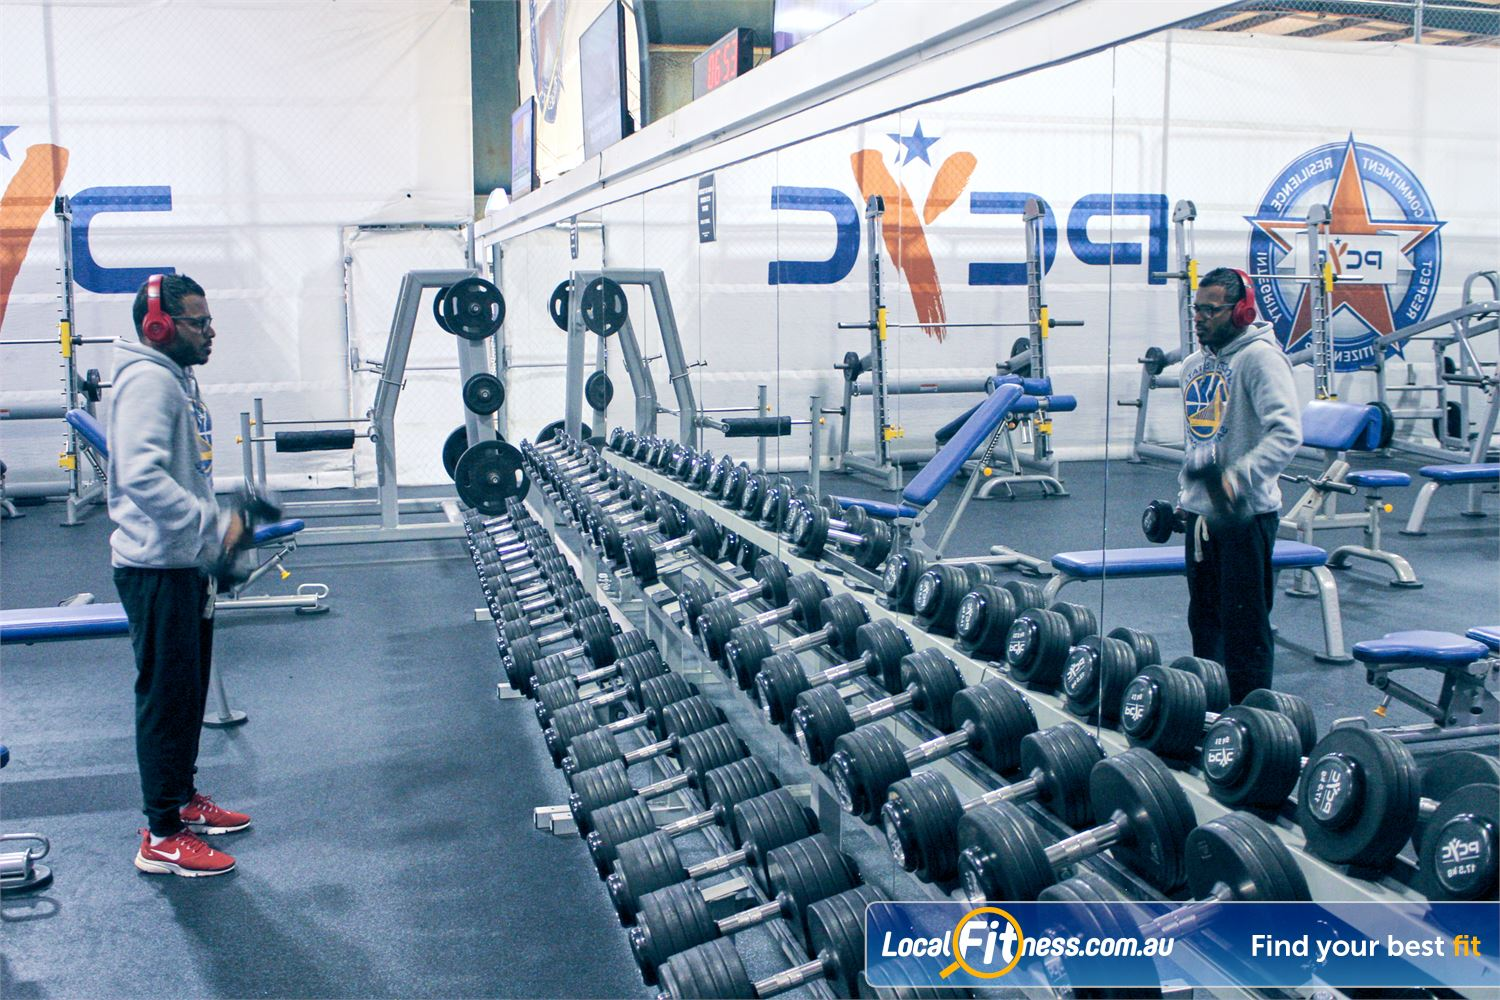 PCYC Auburn Lidcombe Our Auburn gym includes a free-weights area catering for all levels.